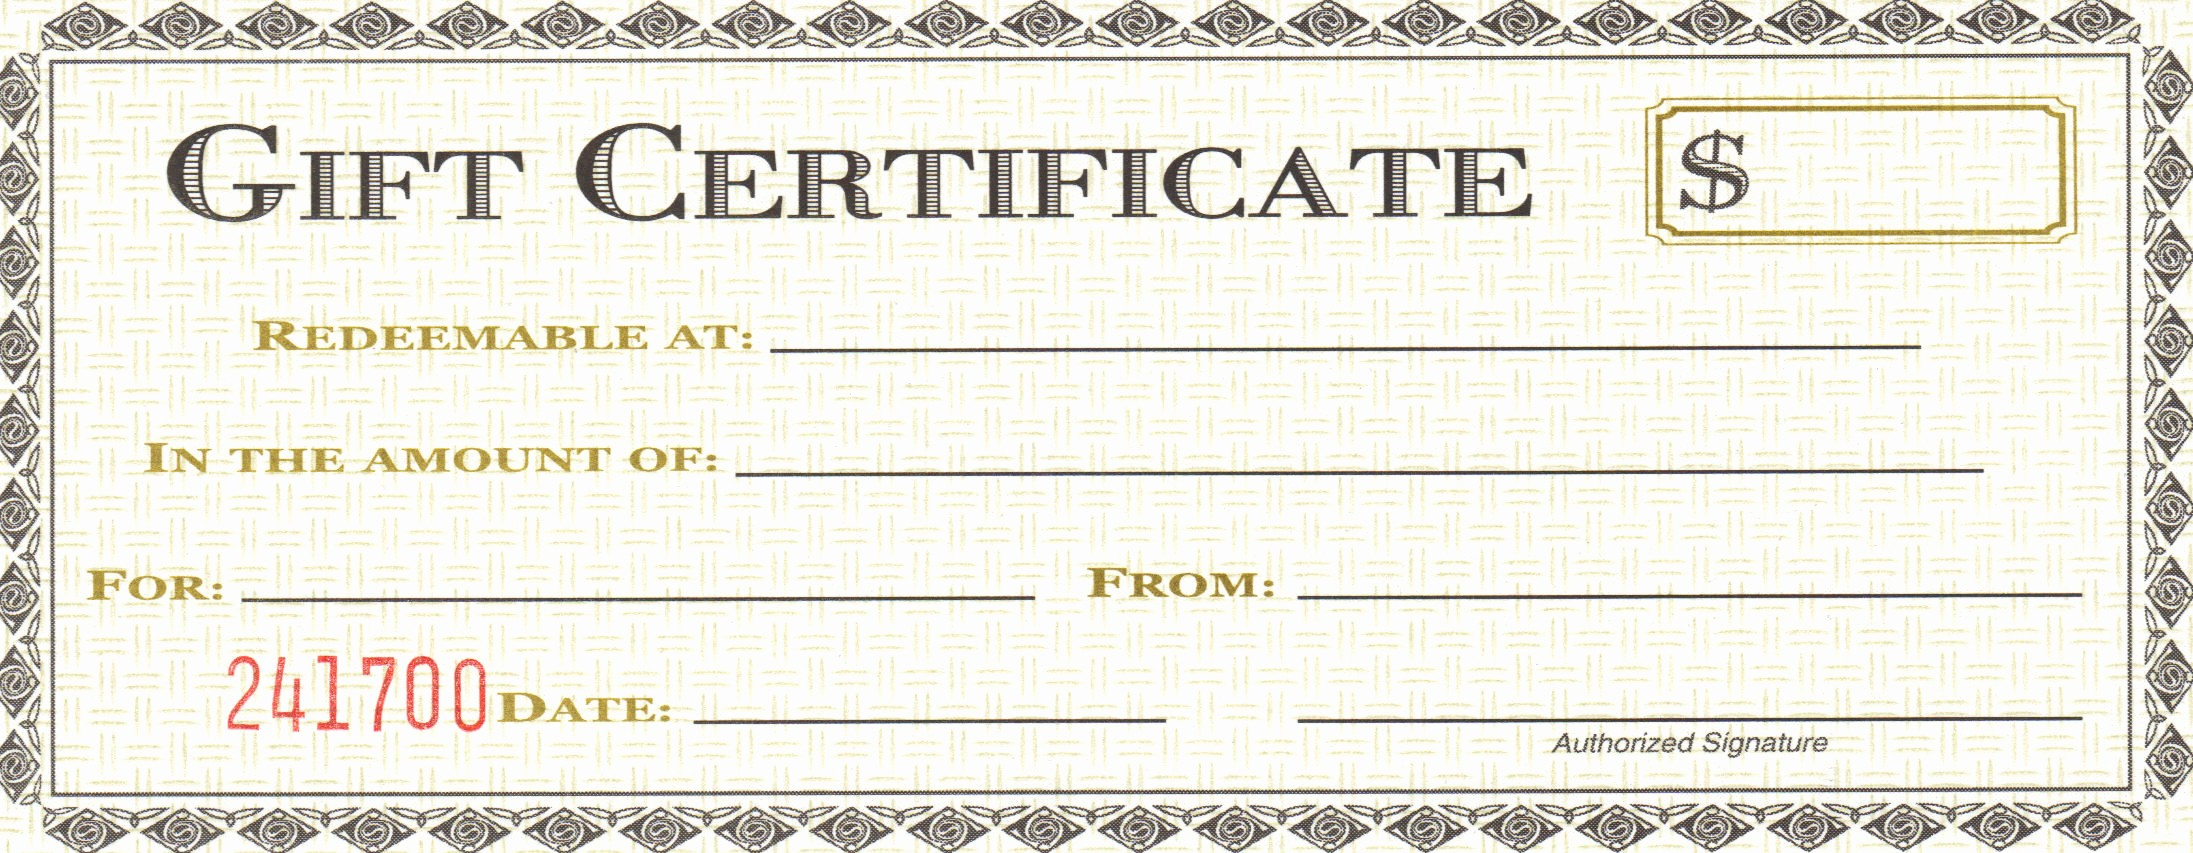 Printable Gift Certificates Online Free Lovely 28 Cool Printable Gift Certificates